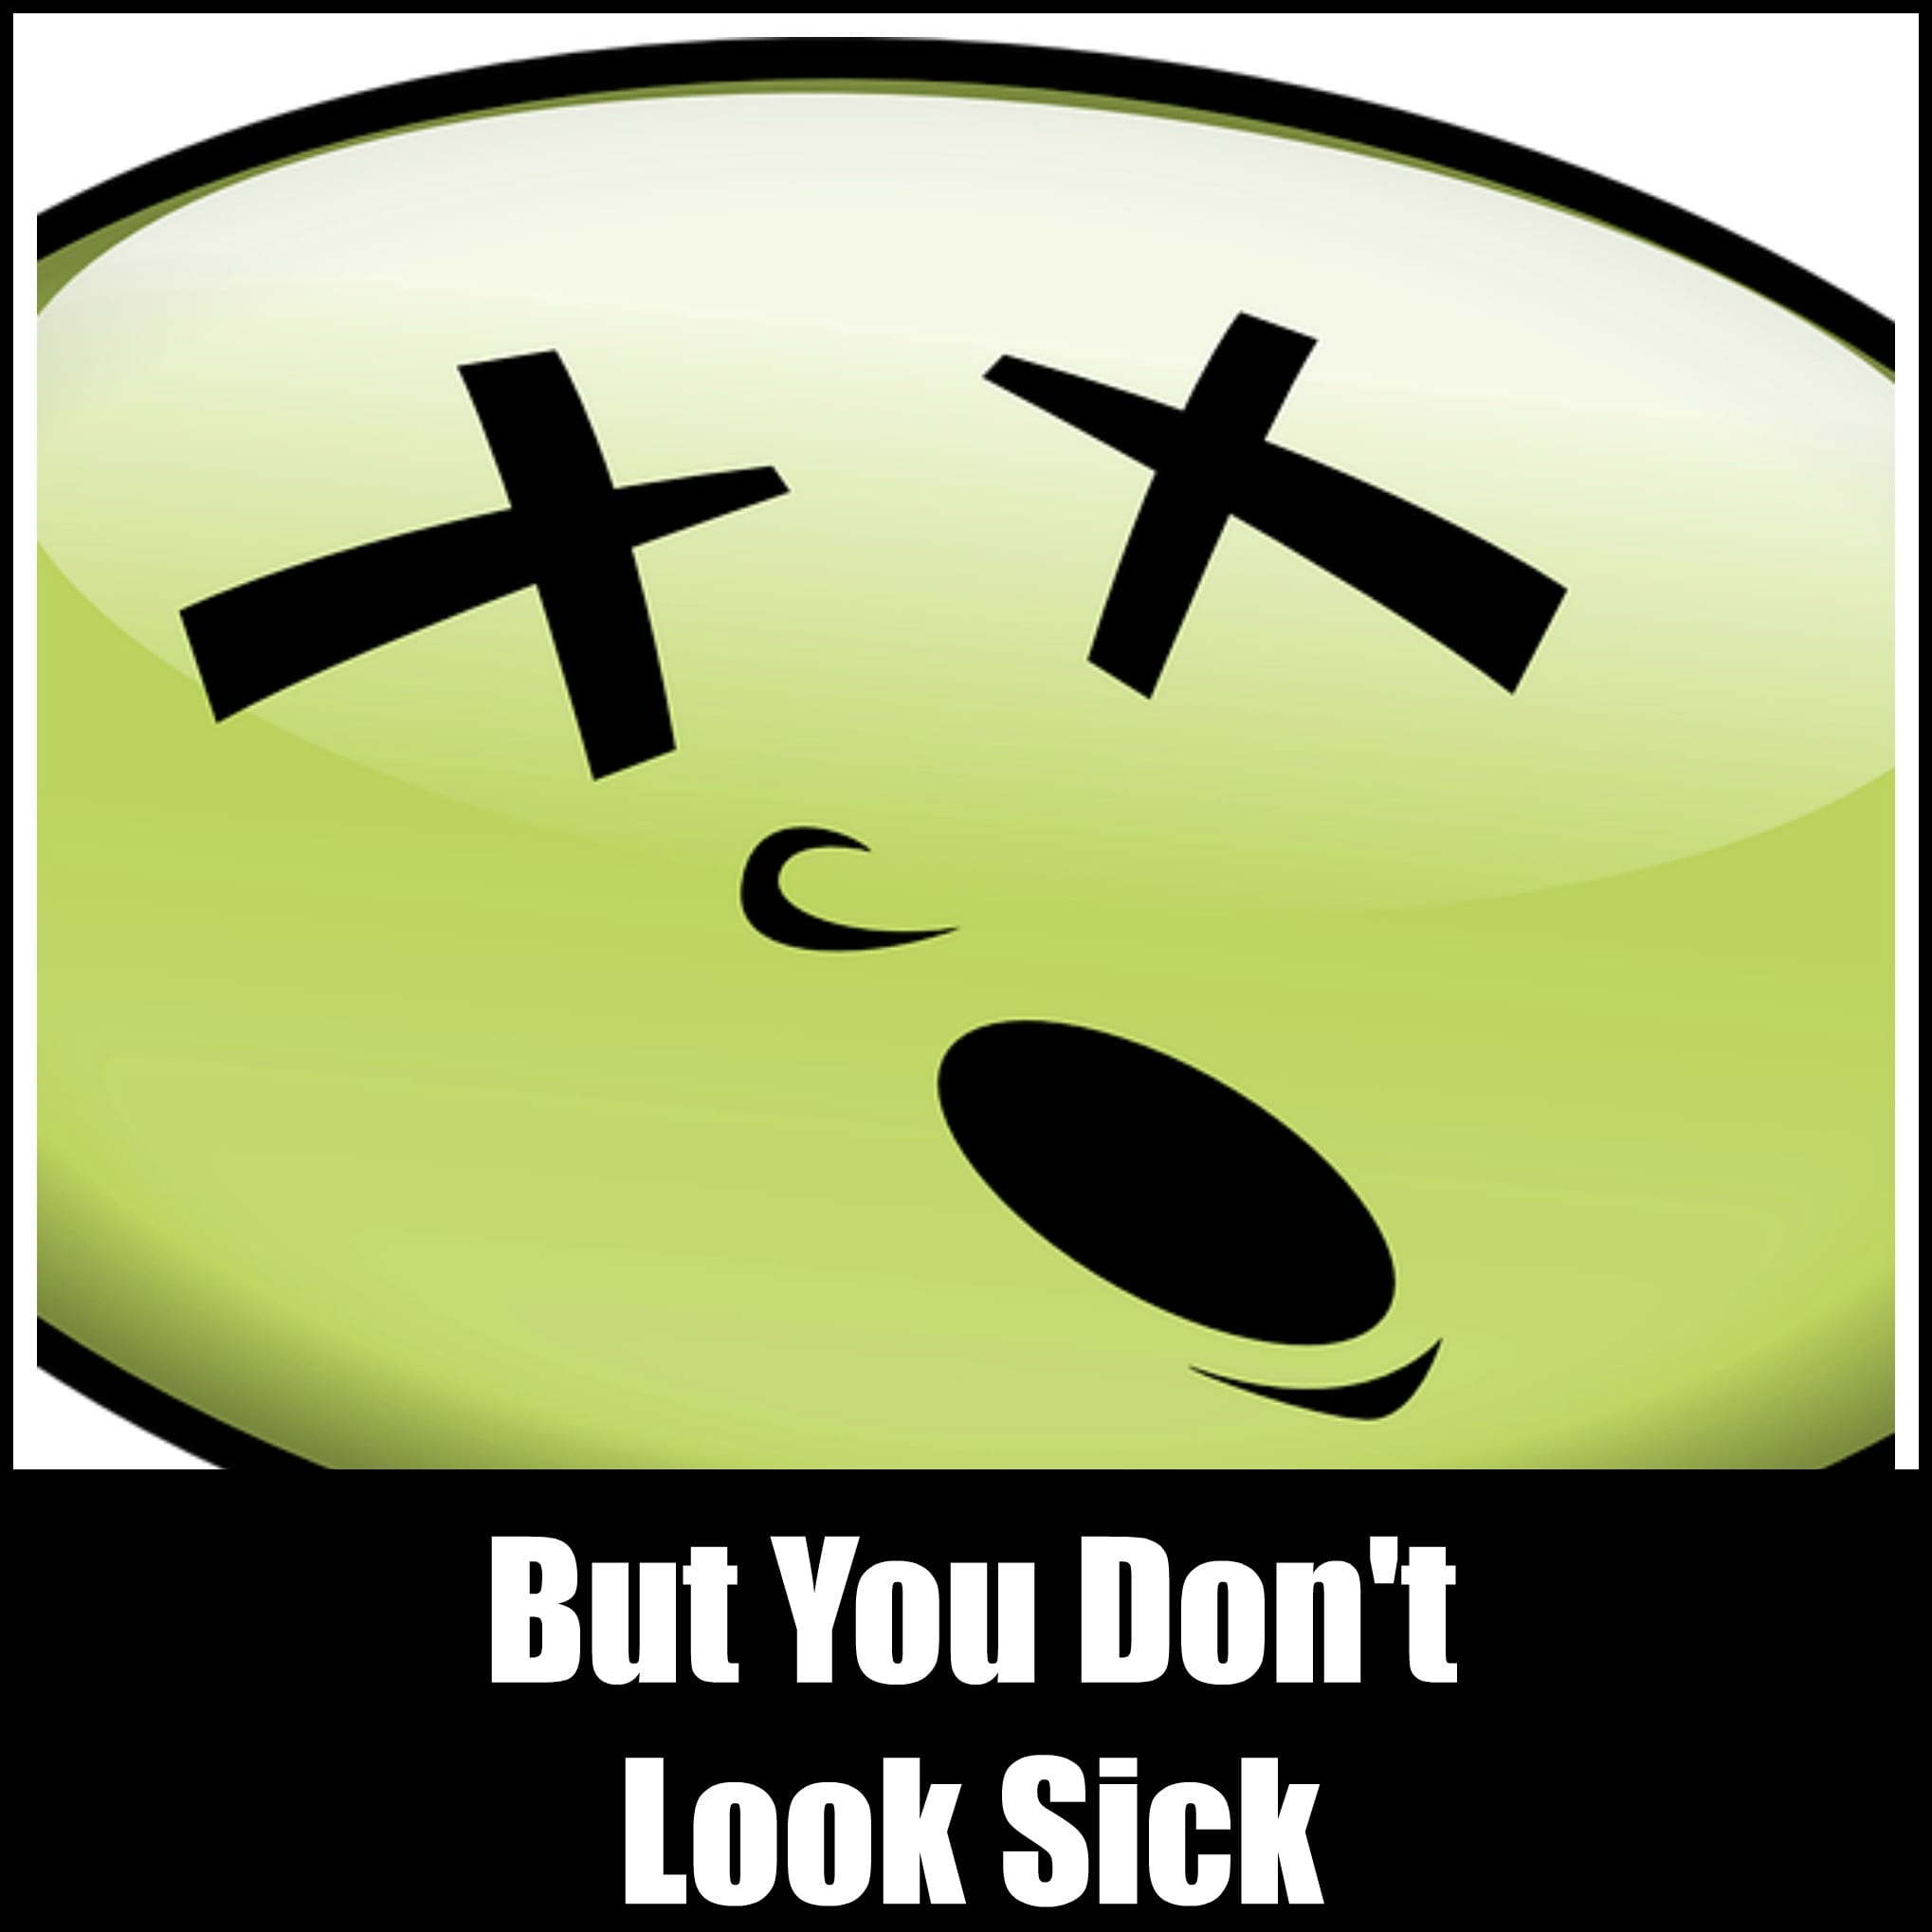 But you don't look sick with fibromyalgia